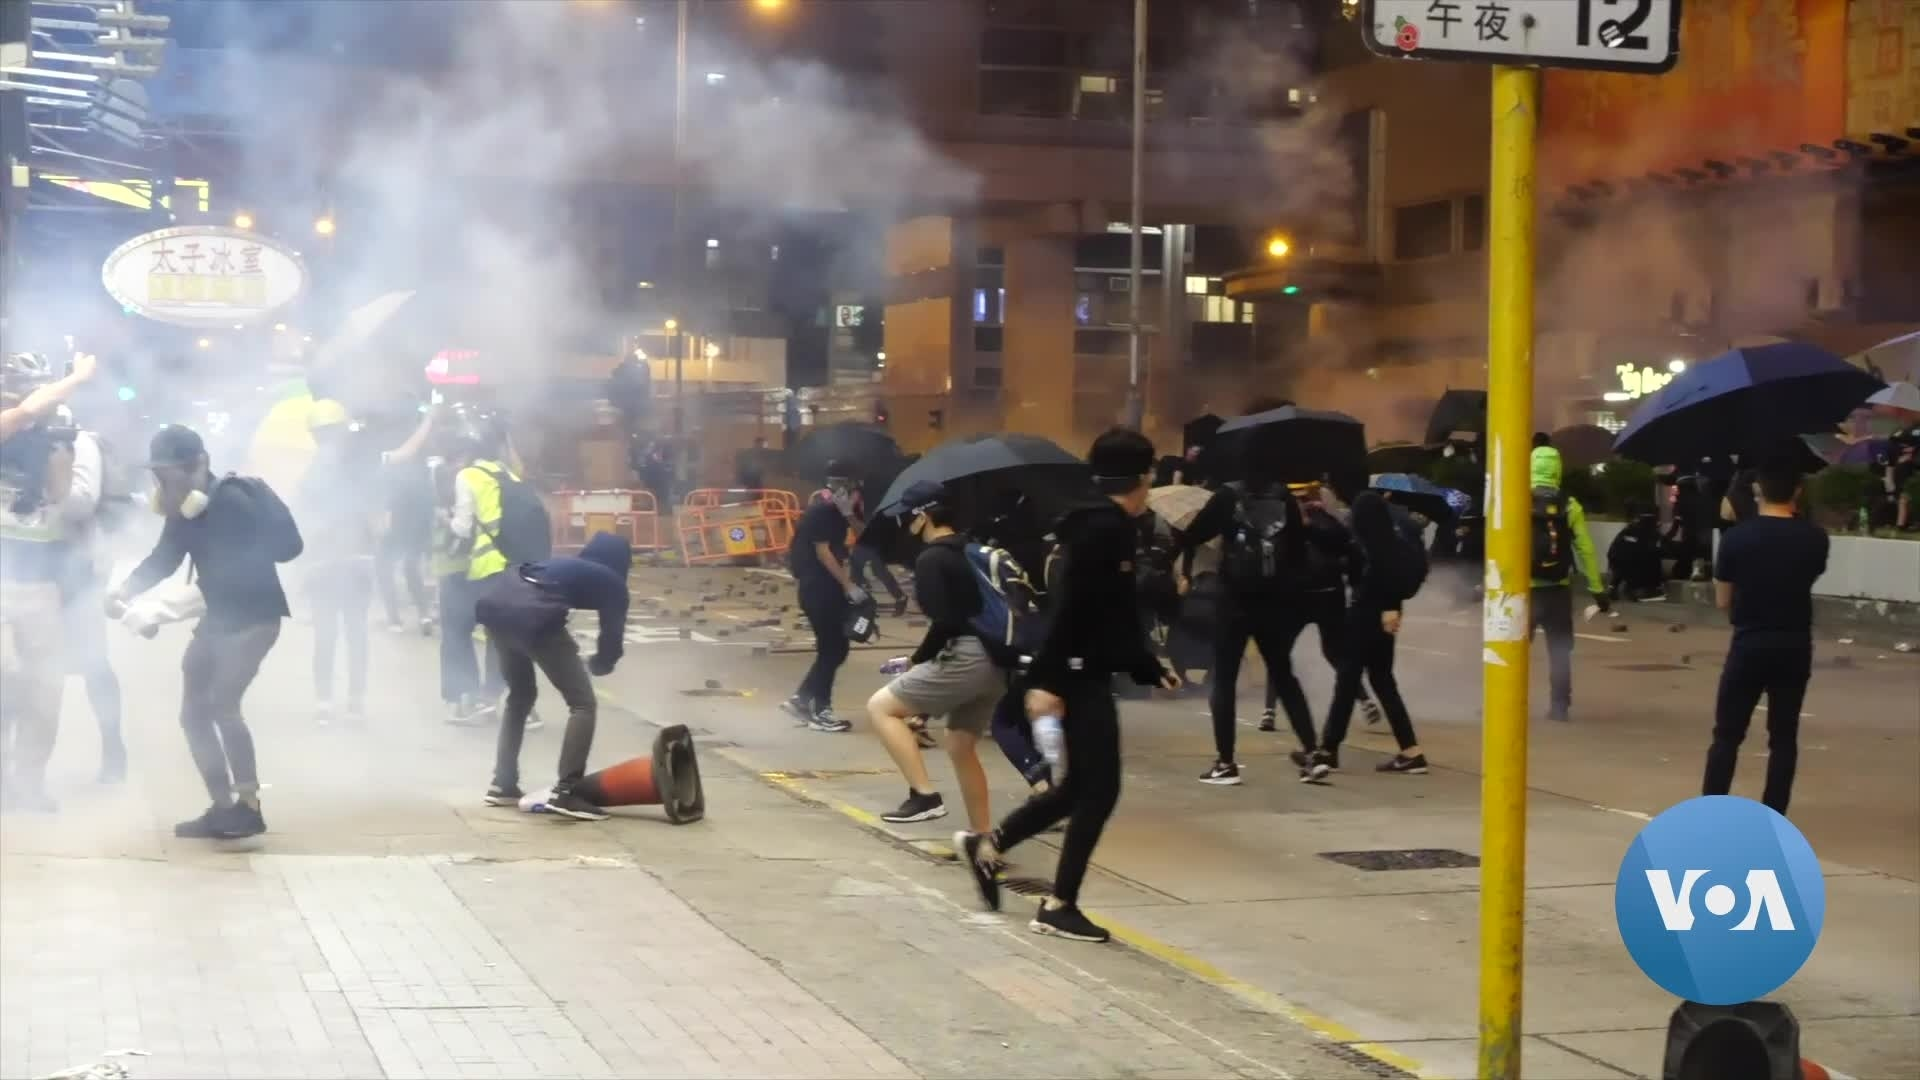 Hong Kong Protests Enter New, More Violent Phase